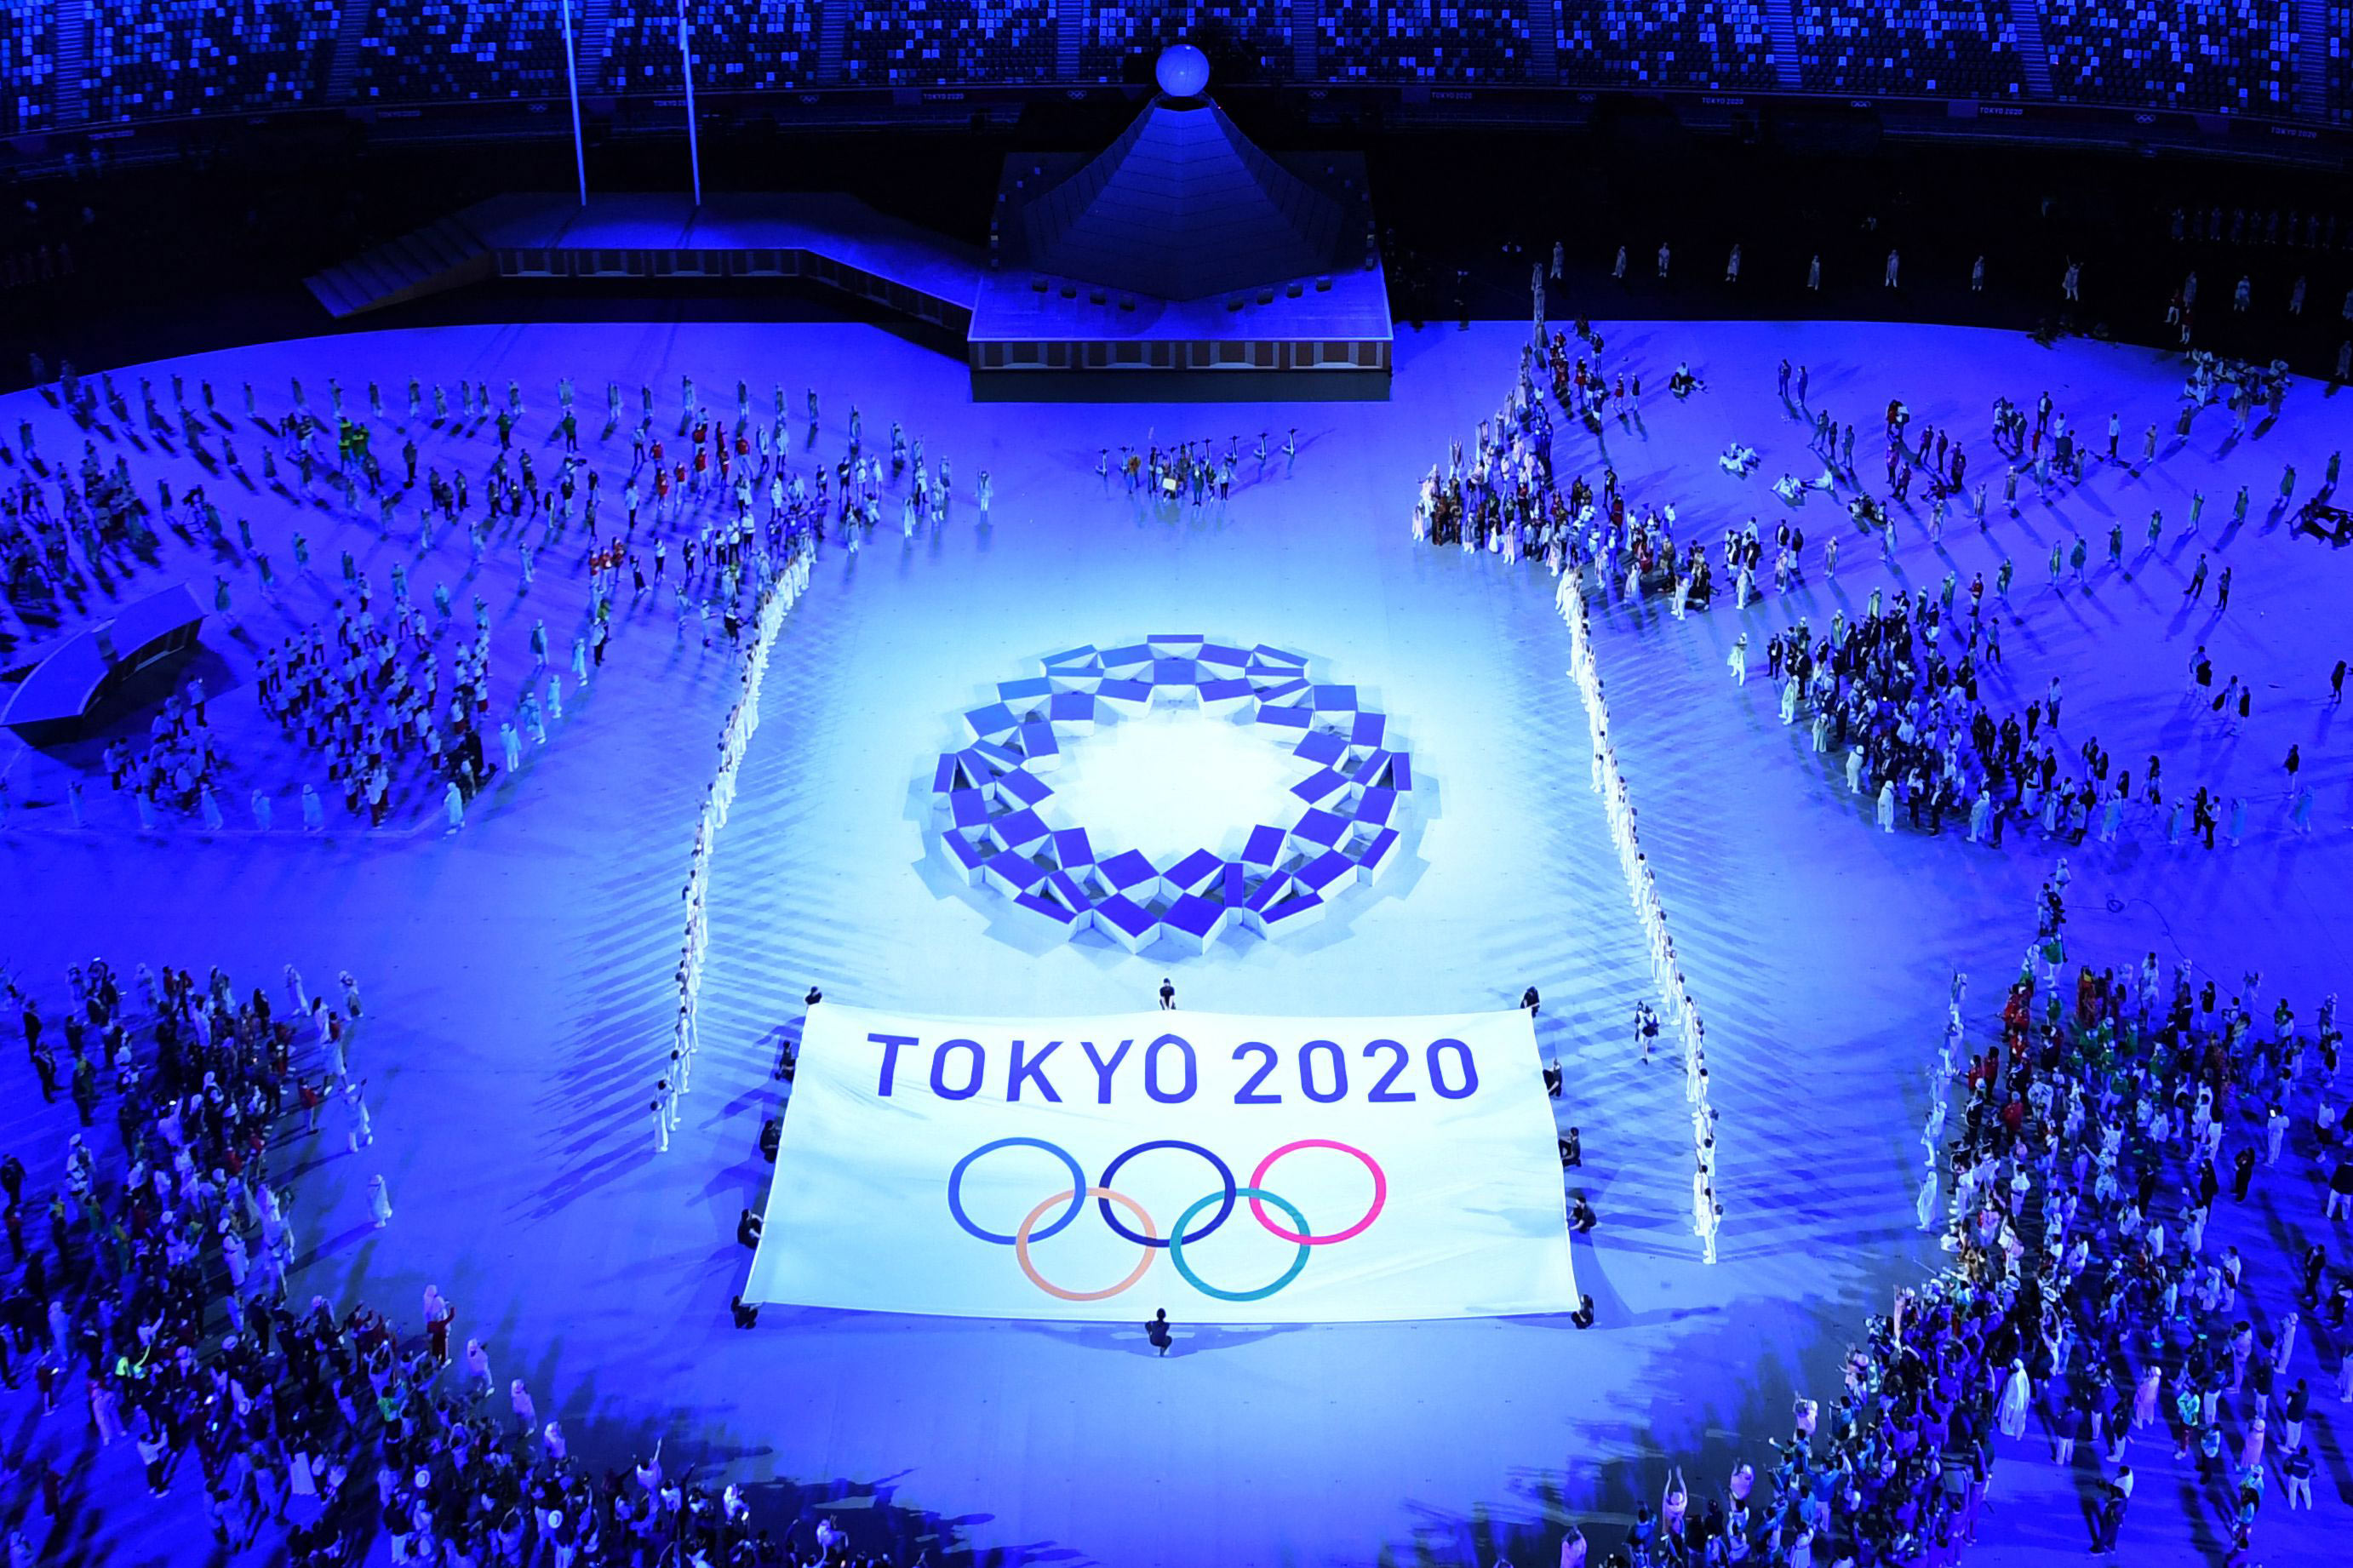 The Tokyo 2020 emblem is seen during the Opening Ceremony on July 23.